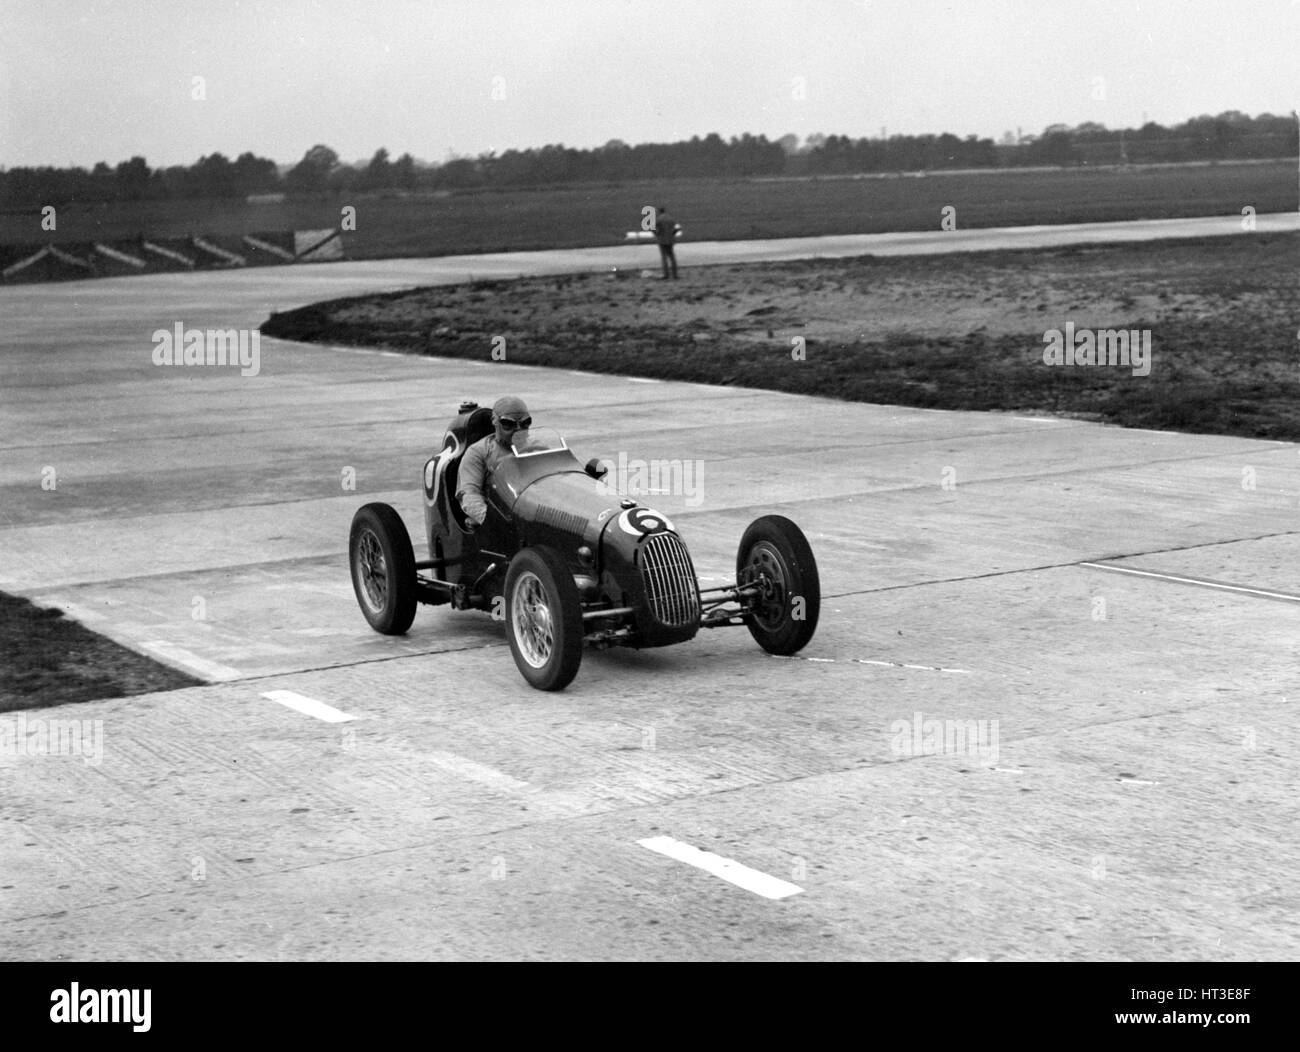 Austin 7 twin cam racing single seater on the Campbell Circuit, Brooklands. Artist: Bill Brunell. - Stock Image